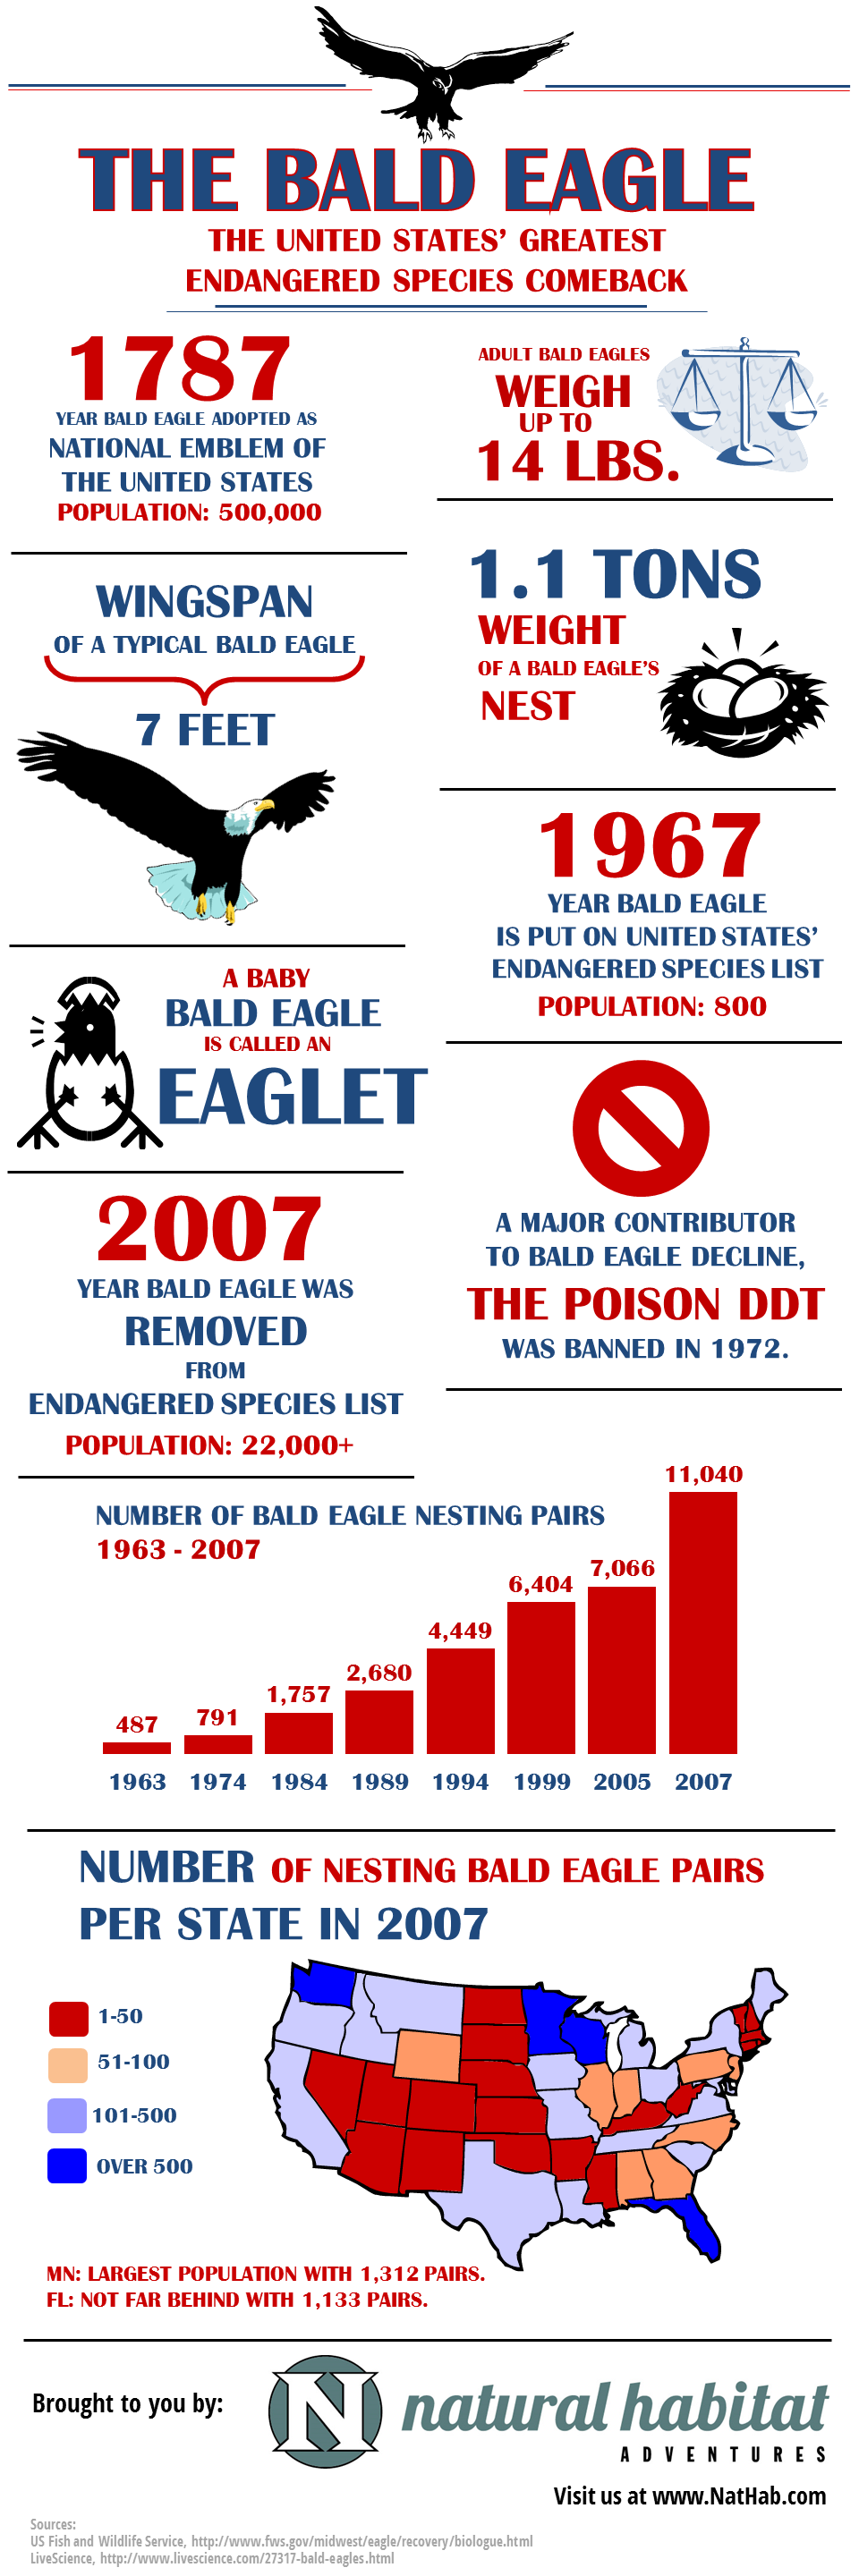 Fun Bald Eagle Facts for the 4th of July [Infographic]